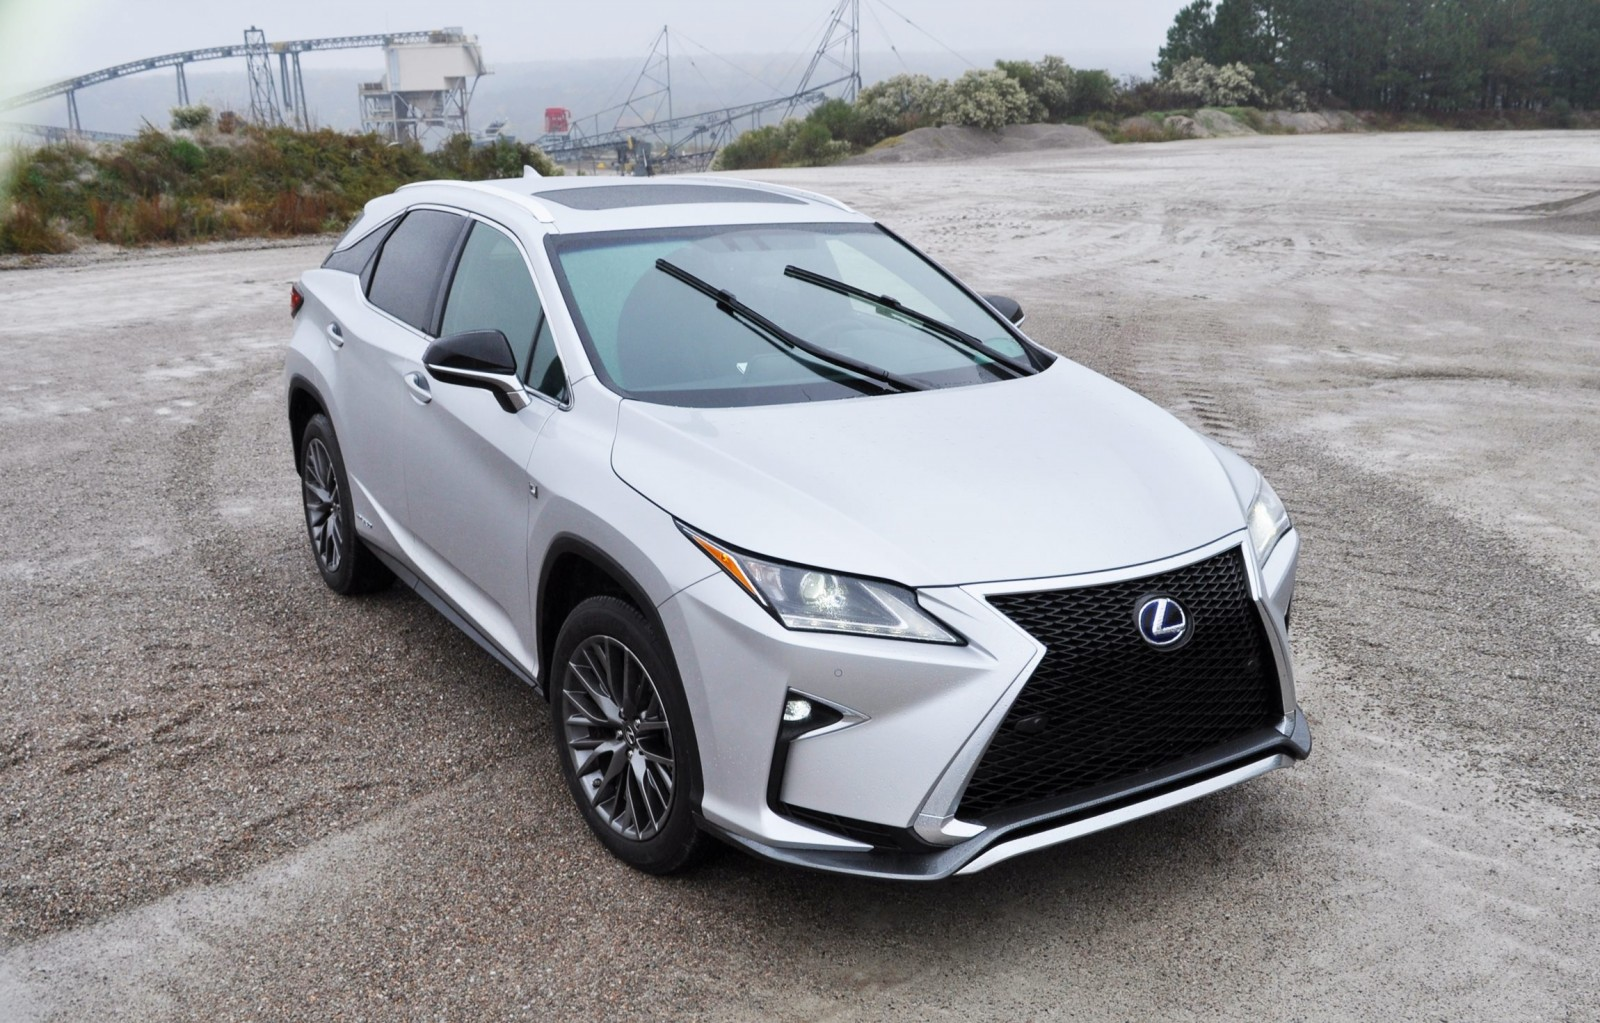 new 2016 lexus rx 450h will have better mileage autos post. Black Bedroom Furniture Sets. Home Design Ideas